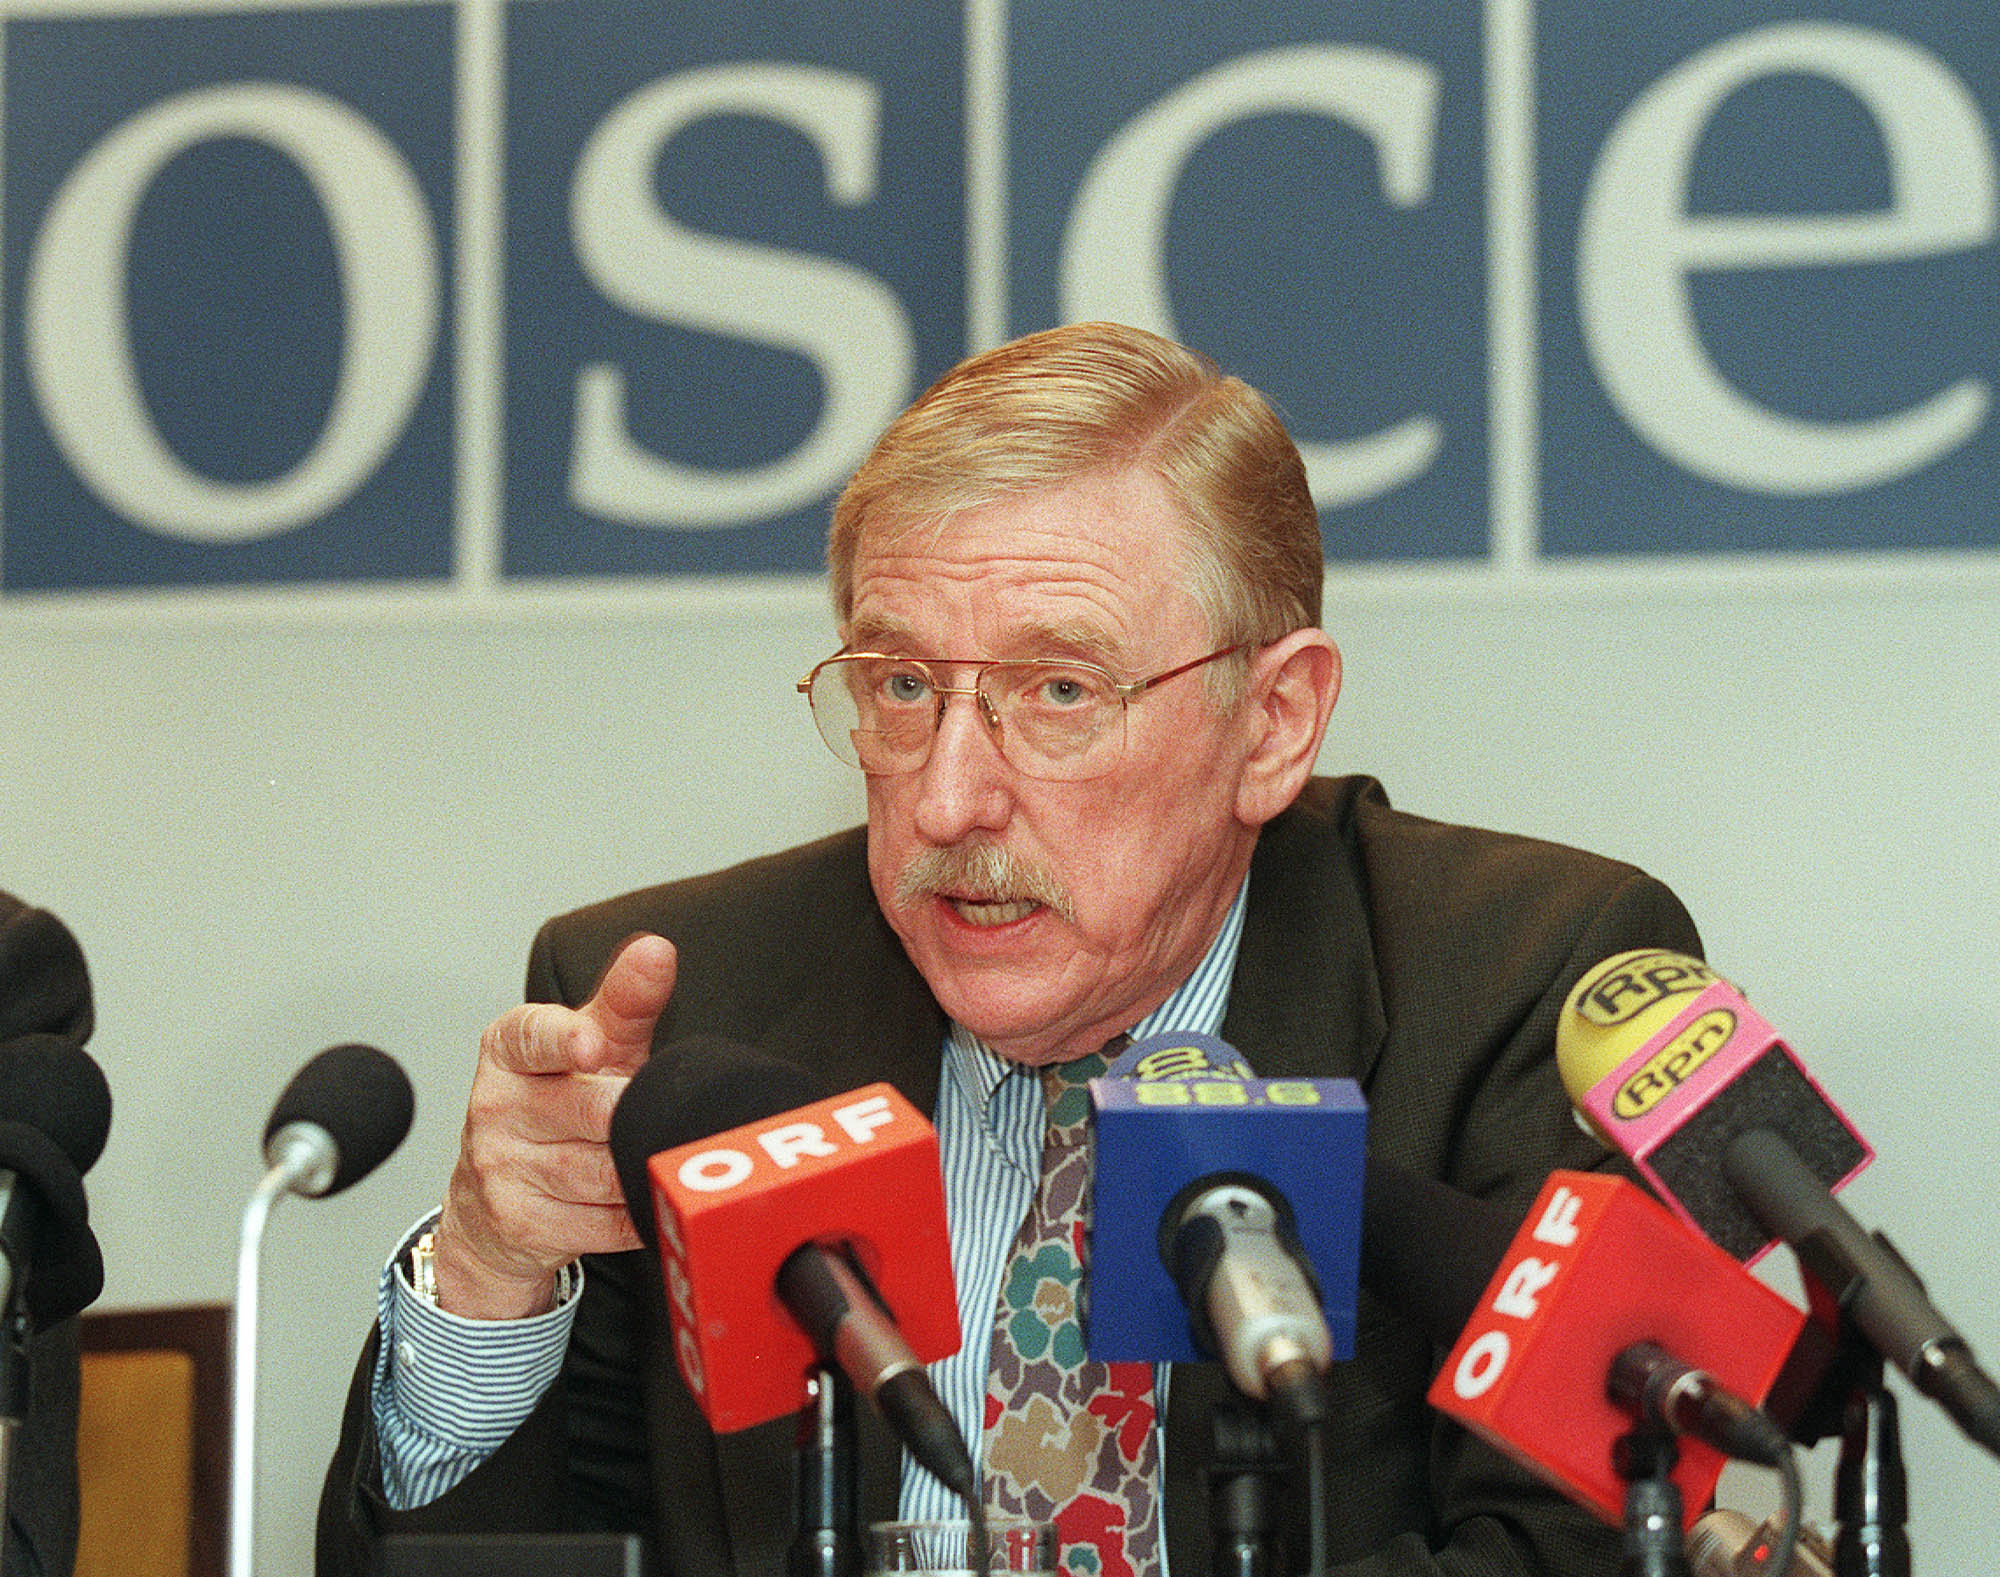 The Head of the Kosovo Verification Mission of the Organization for Security and Co-operation in Europe (OSCE) William Walker answers reporter's question during a press conference at Vienna's Hofburg Palace, Moday, Jan. 25 1999